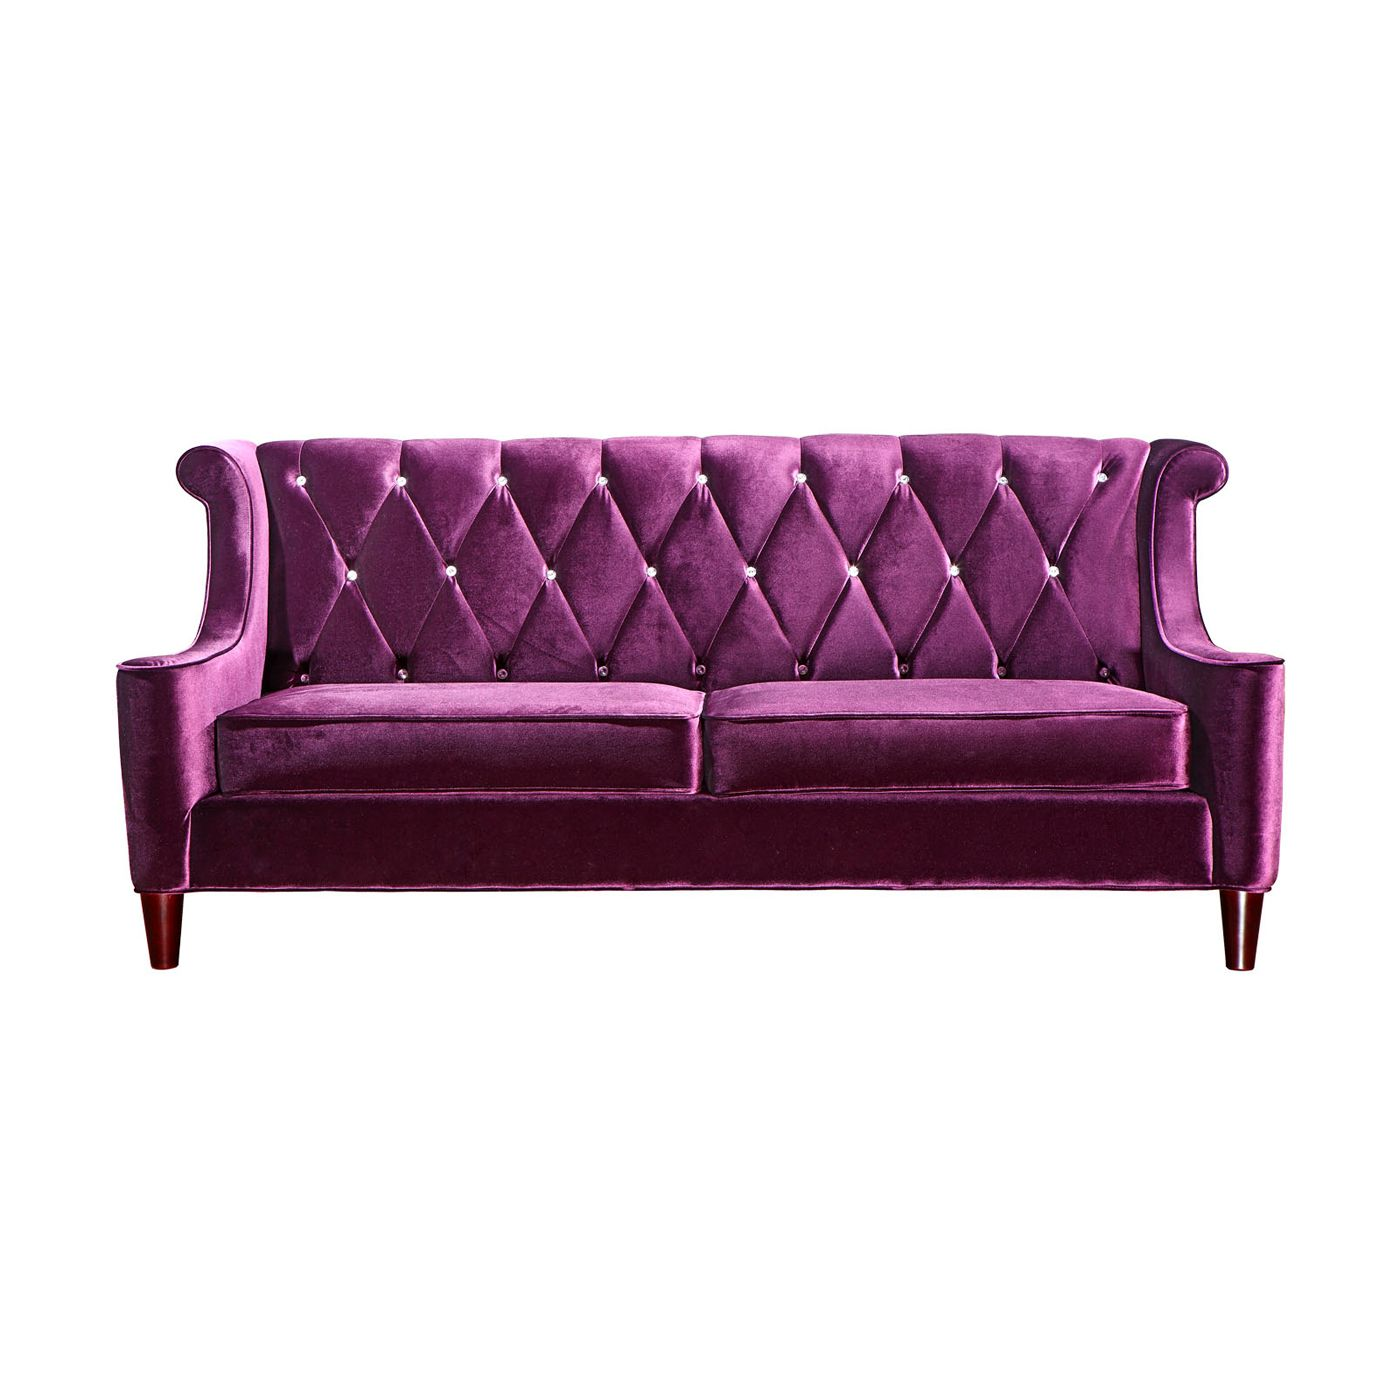 Remarkable 20 Best Purple Sofas Beautiful Purple Couches To Buy Beatyapartments Chair Design Images Beatyapartmentscom